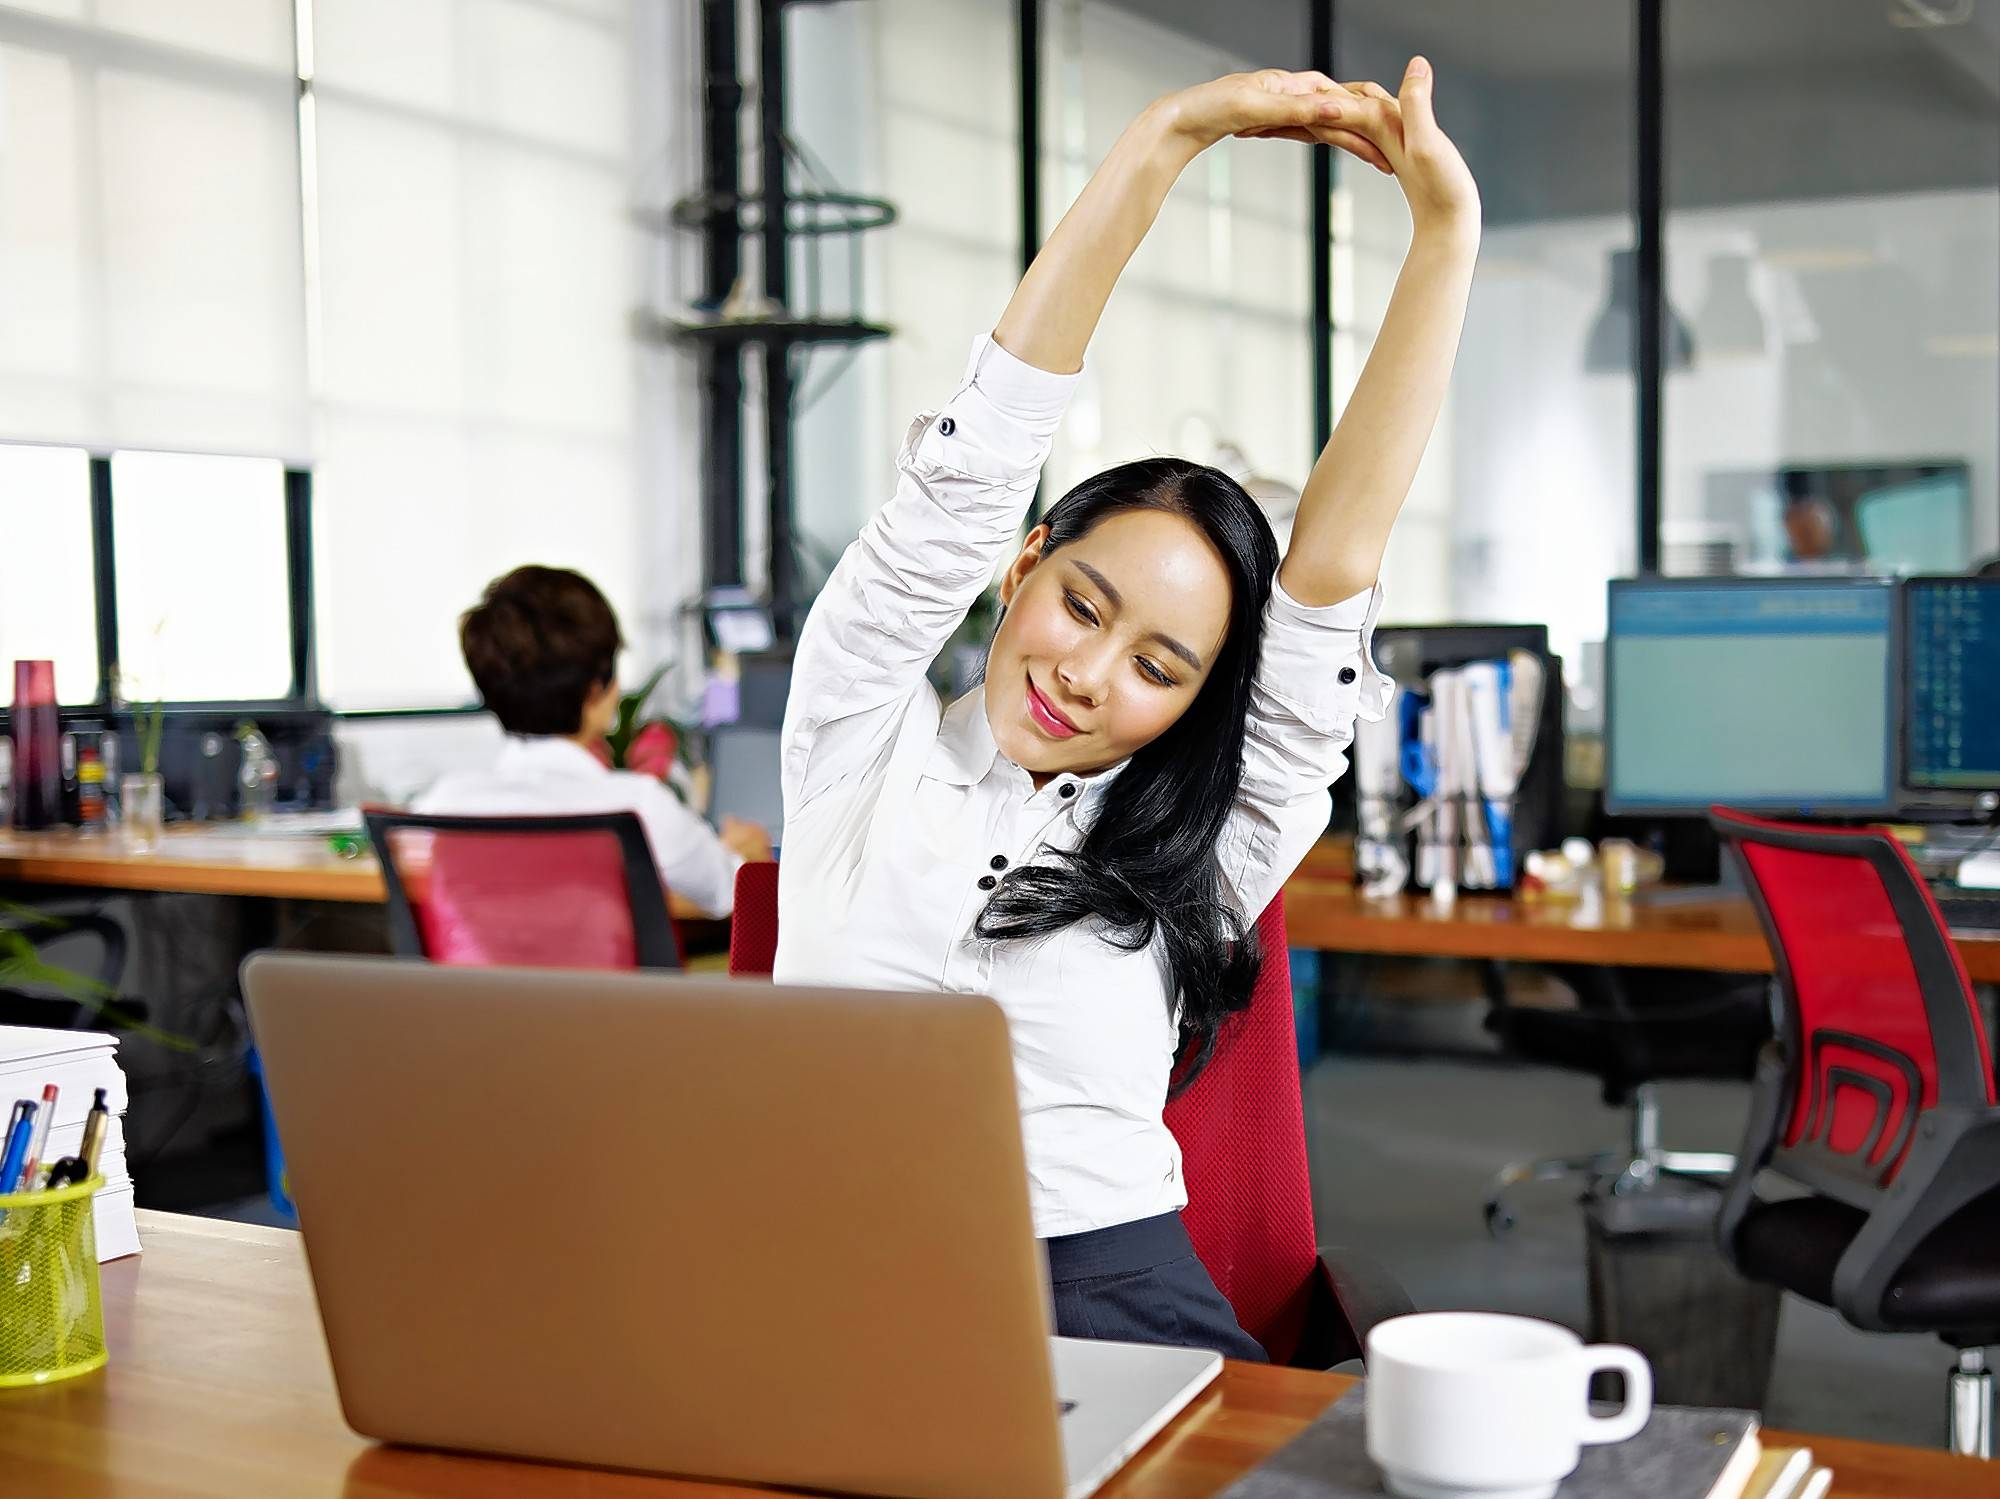 Happy and healthy employees are a company's most valuable asset. Find out how to achieve that.